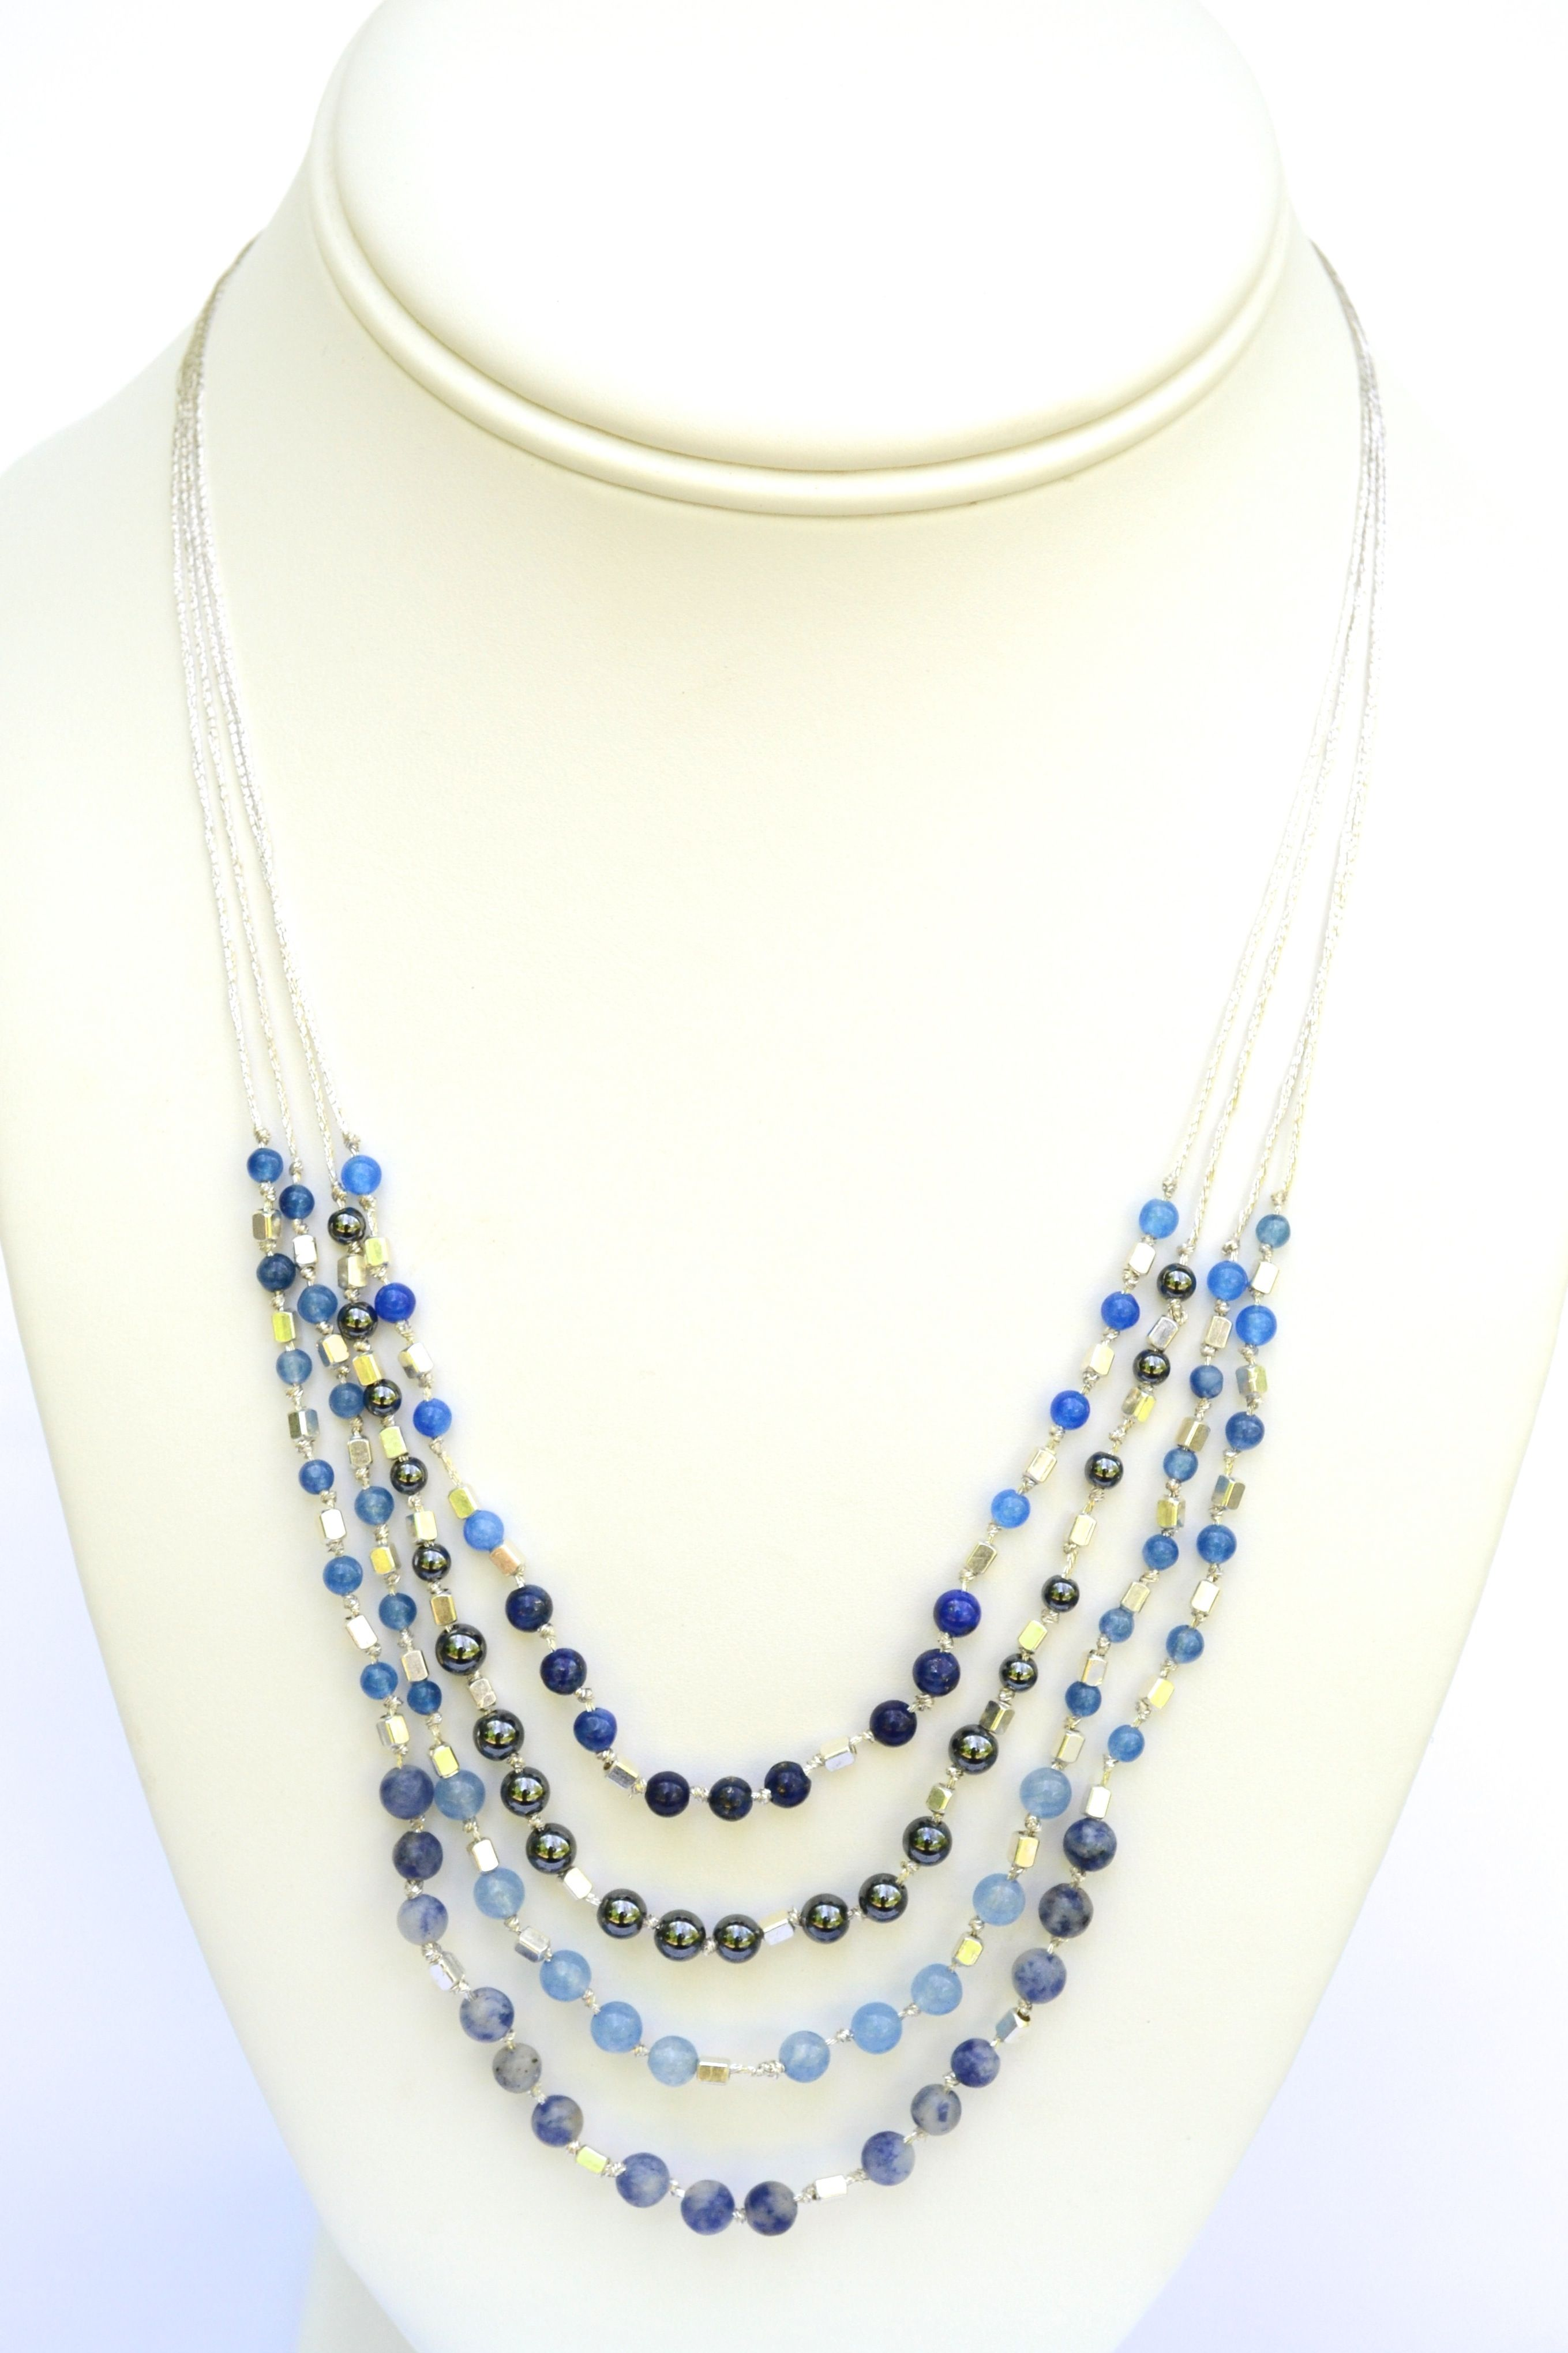 Brooke - This is a playful, easy to wear necklace using semi precious stones on silk thread.